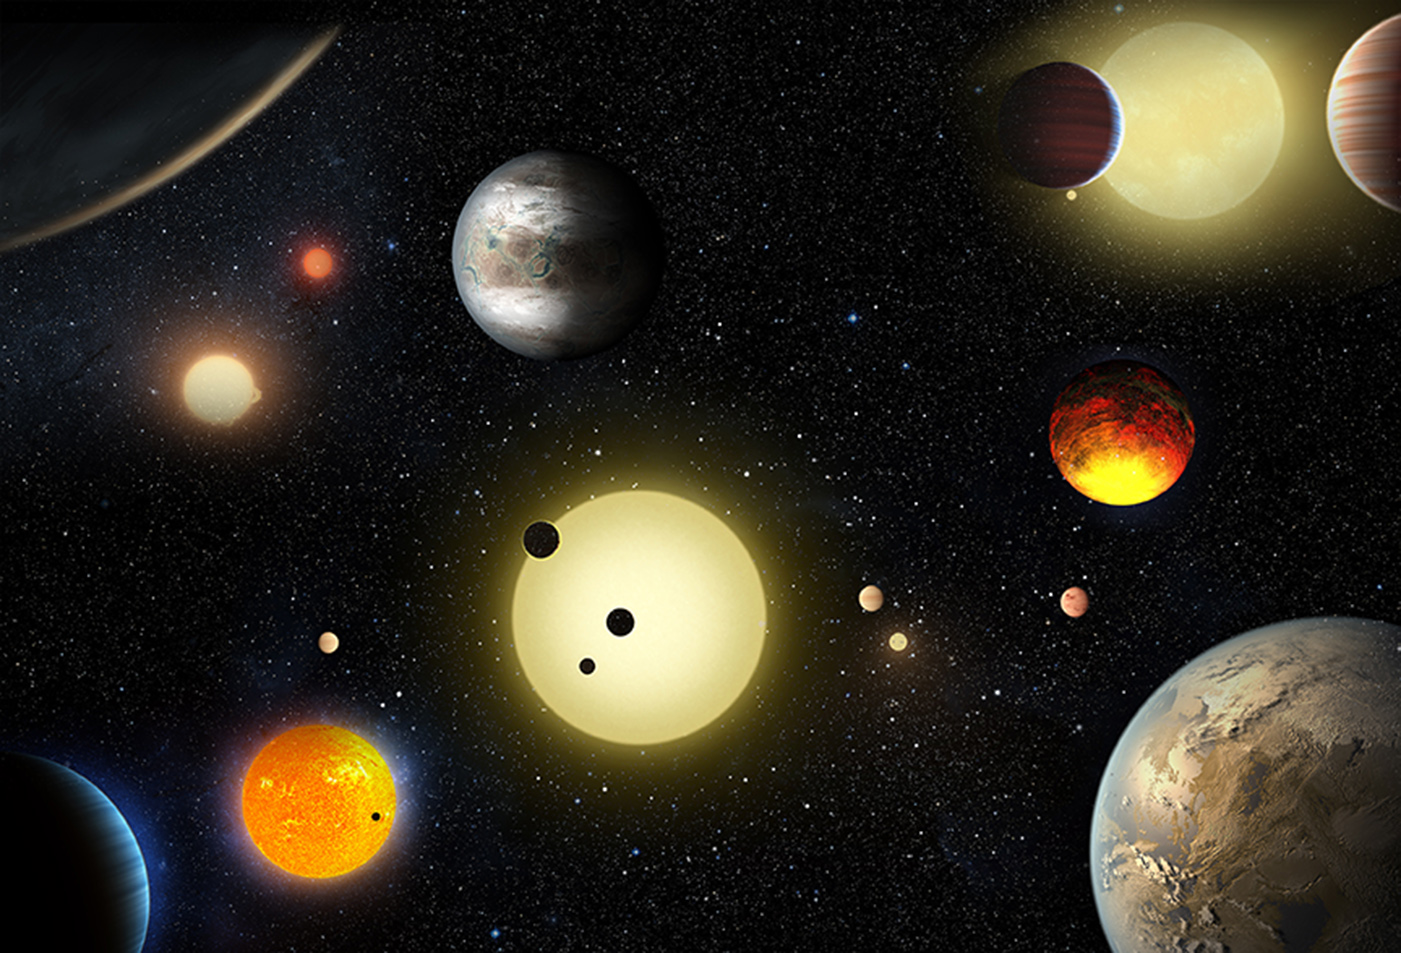 NASA identifies 1,284 new exoplanets, most ever announced at once